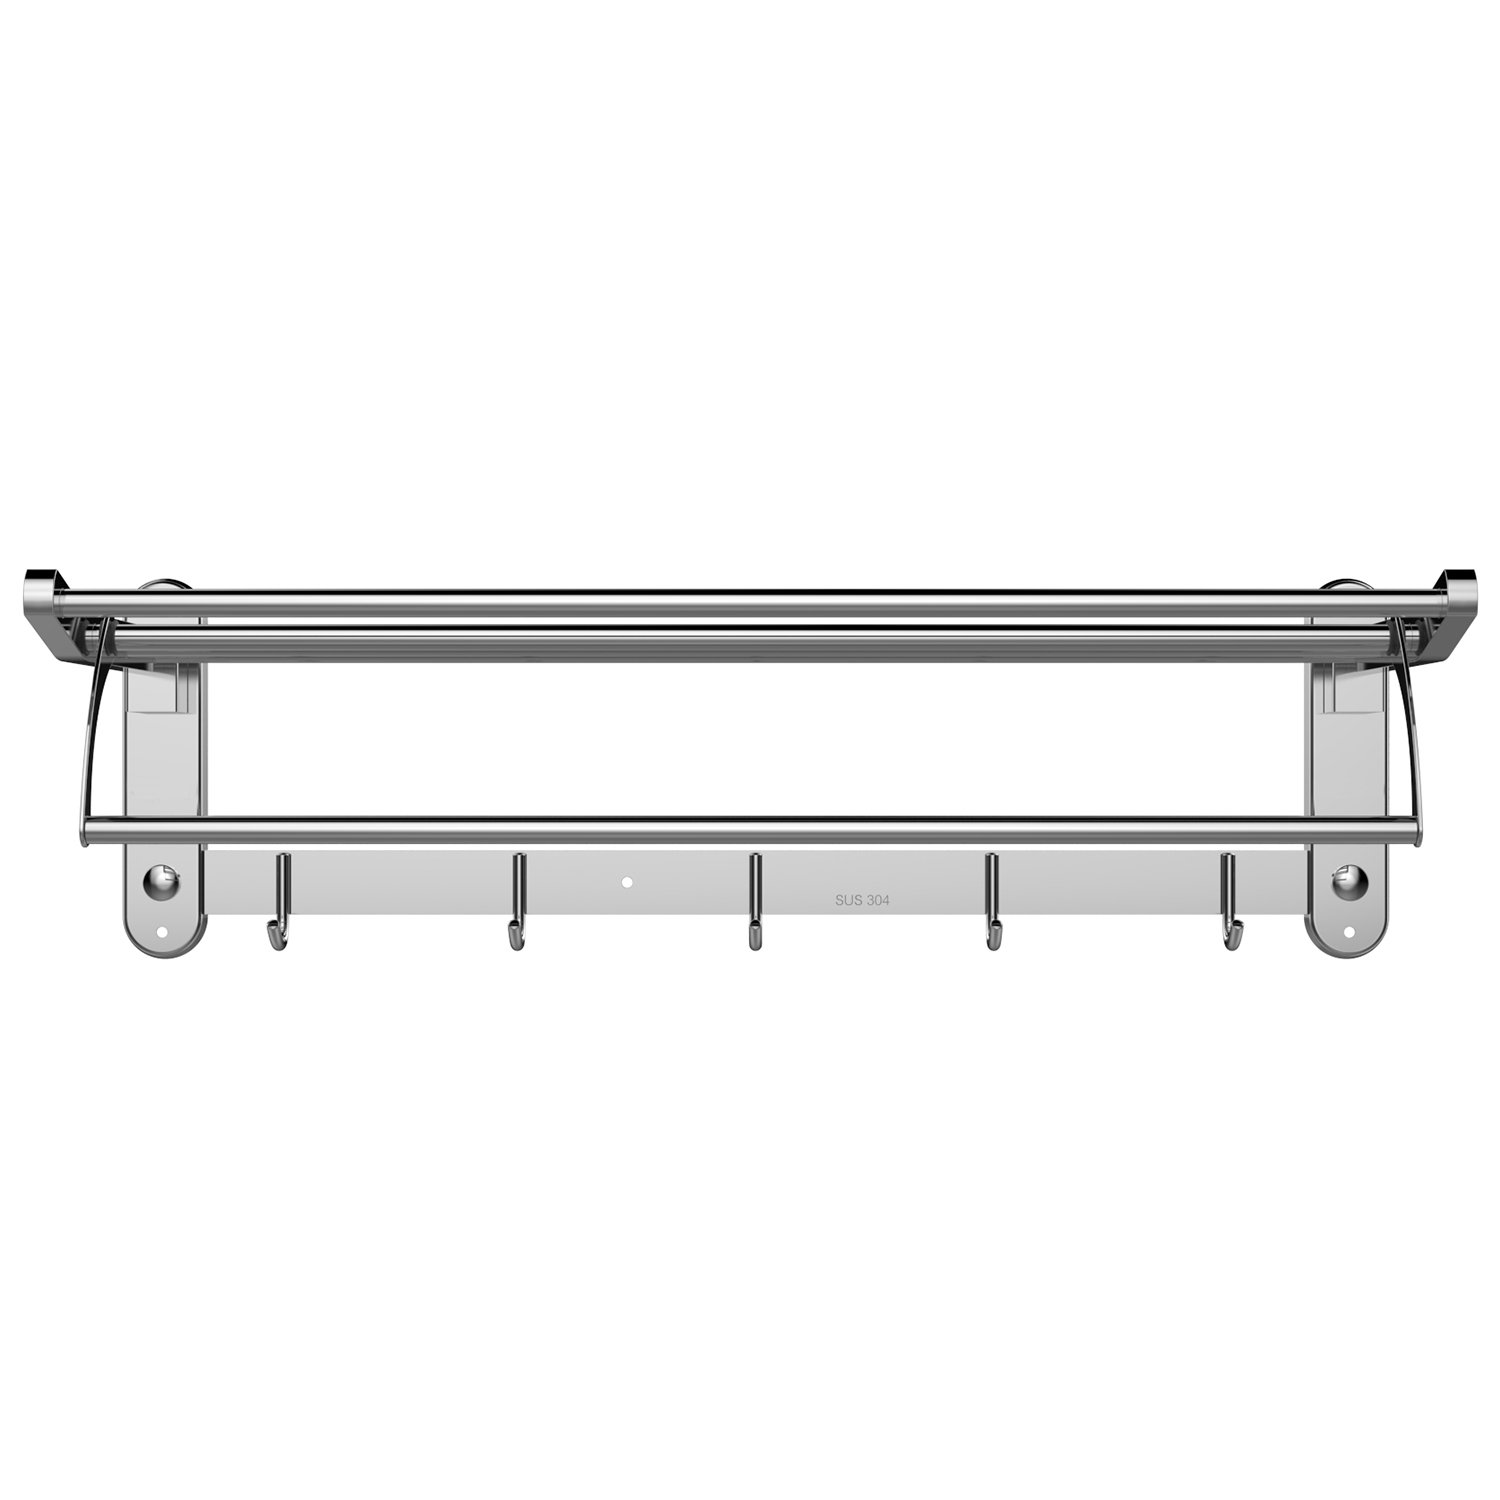 Amazoncom Inmount Towel Shelf Bathroom Towel Bar Stainless Steel Towel